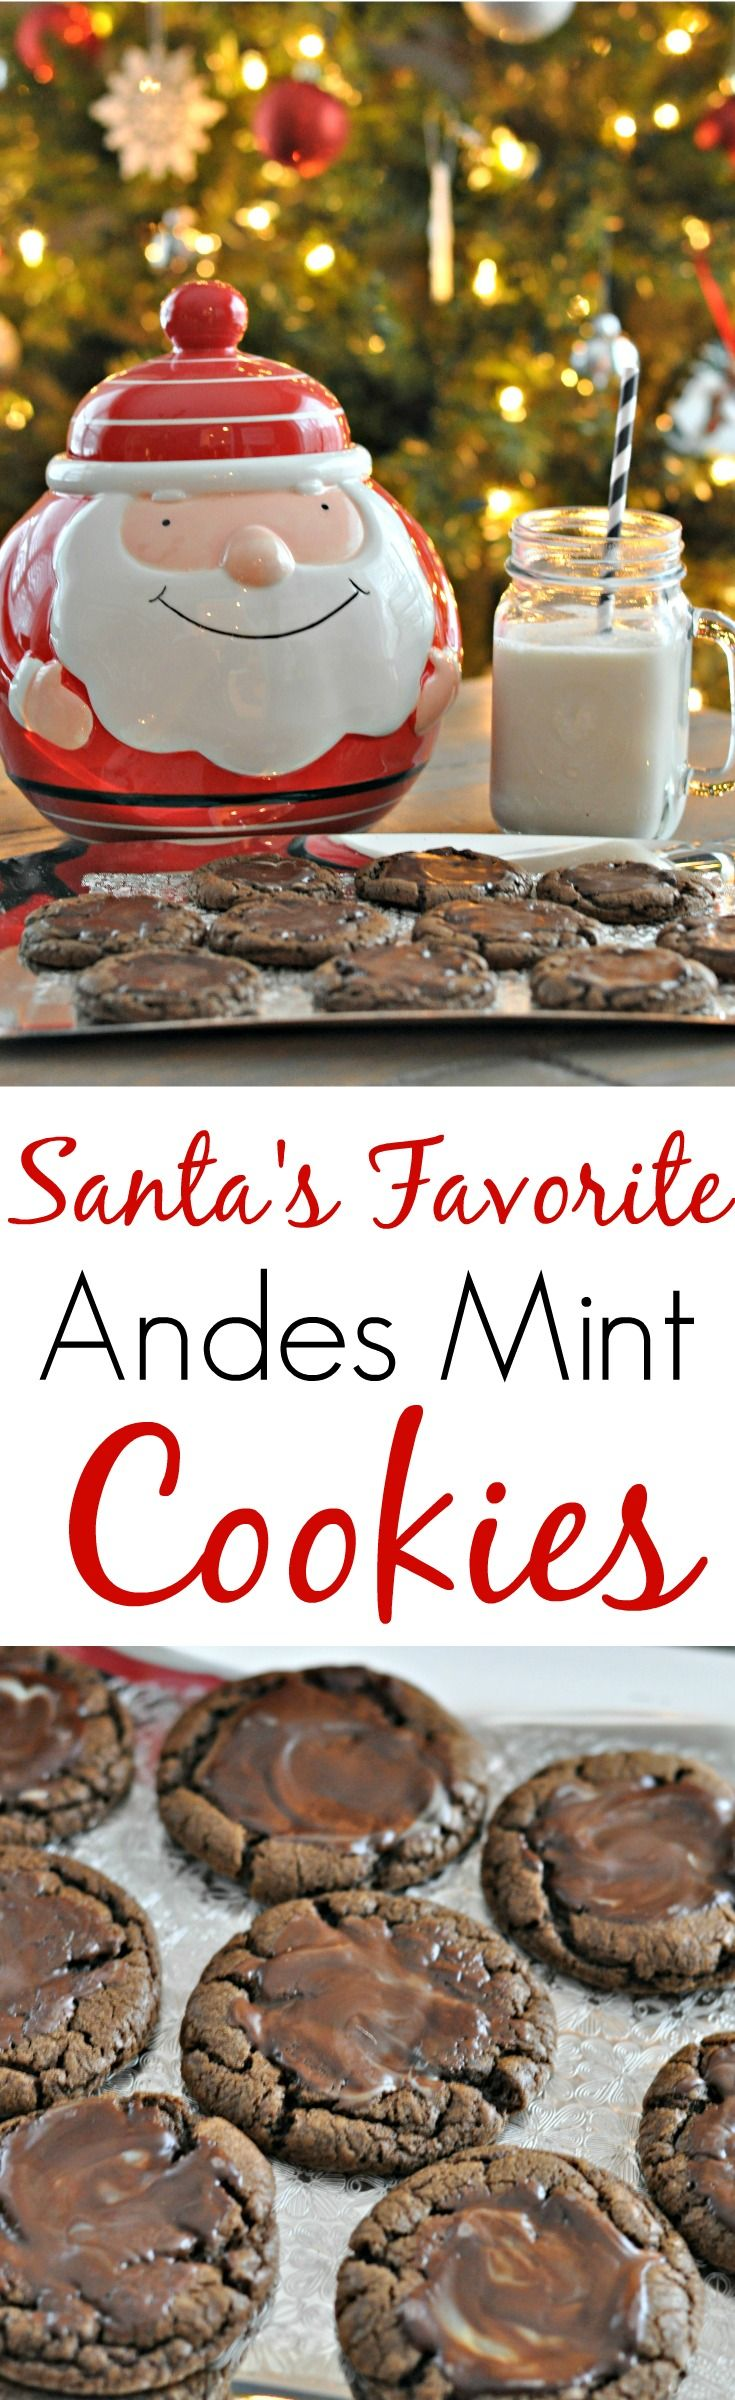 Andes Mint Cookies.  They're so good they are Santa's favorite!